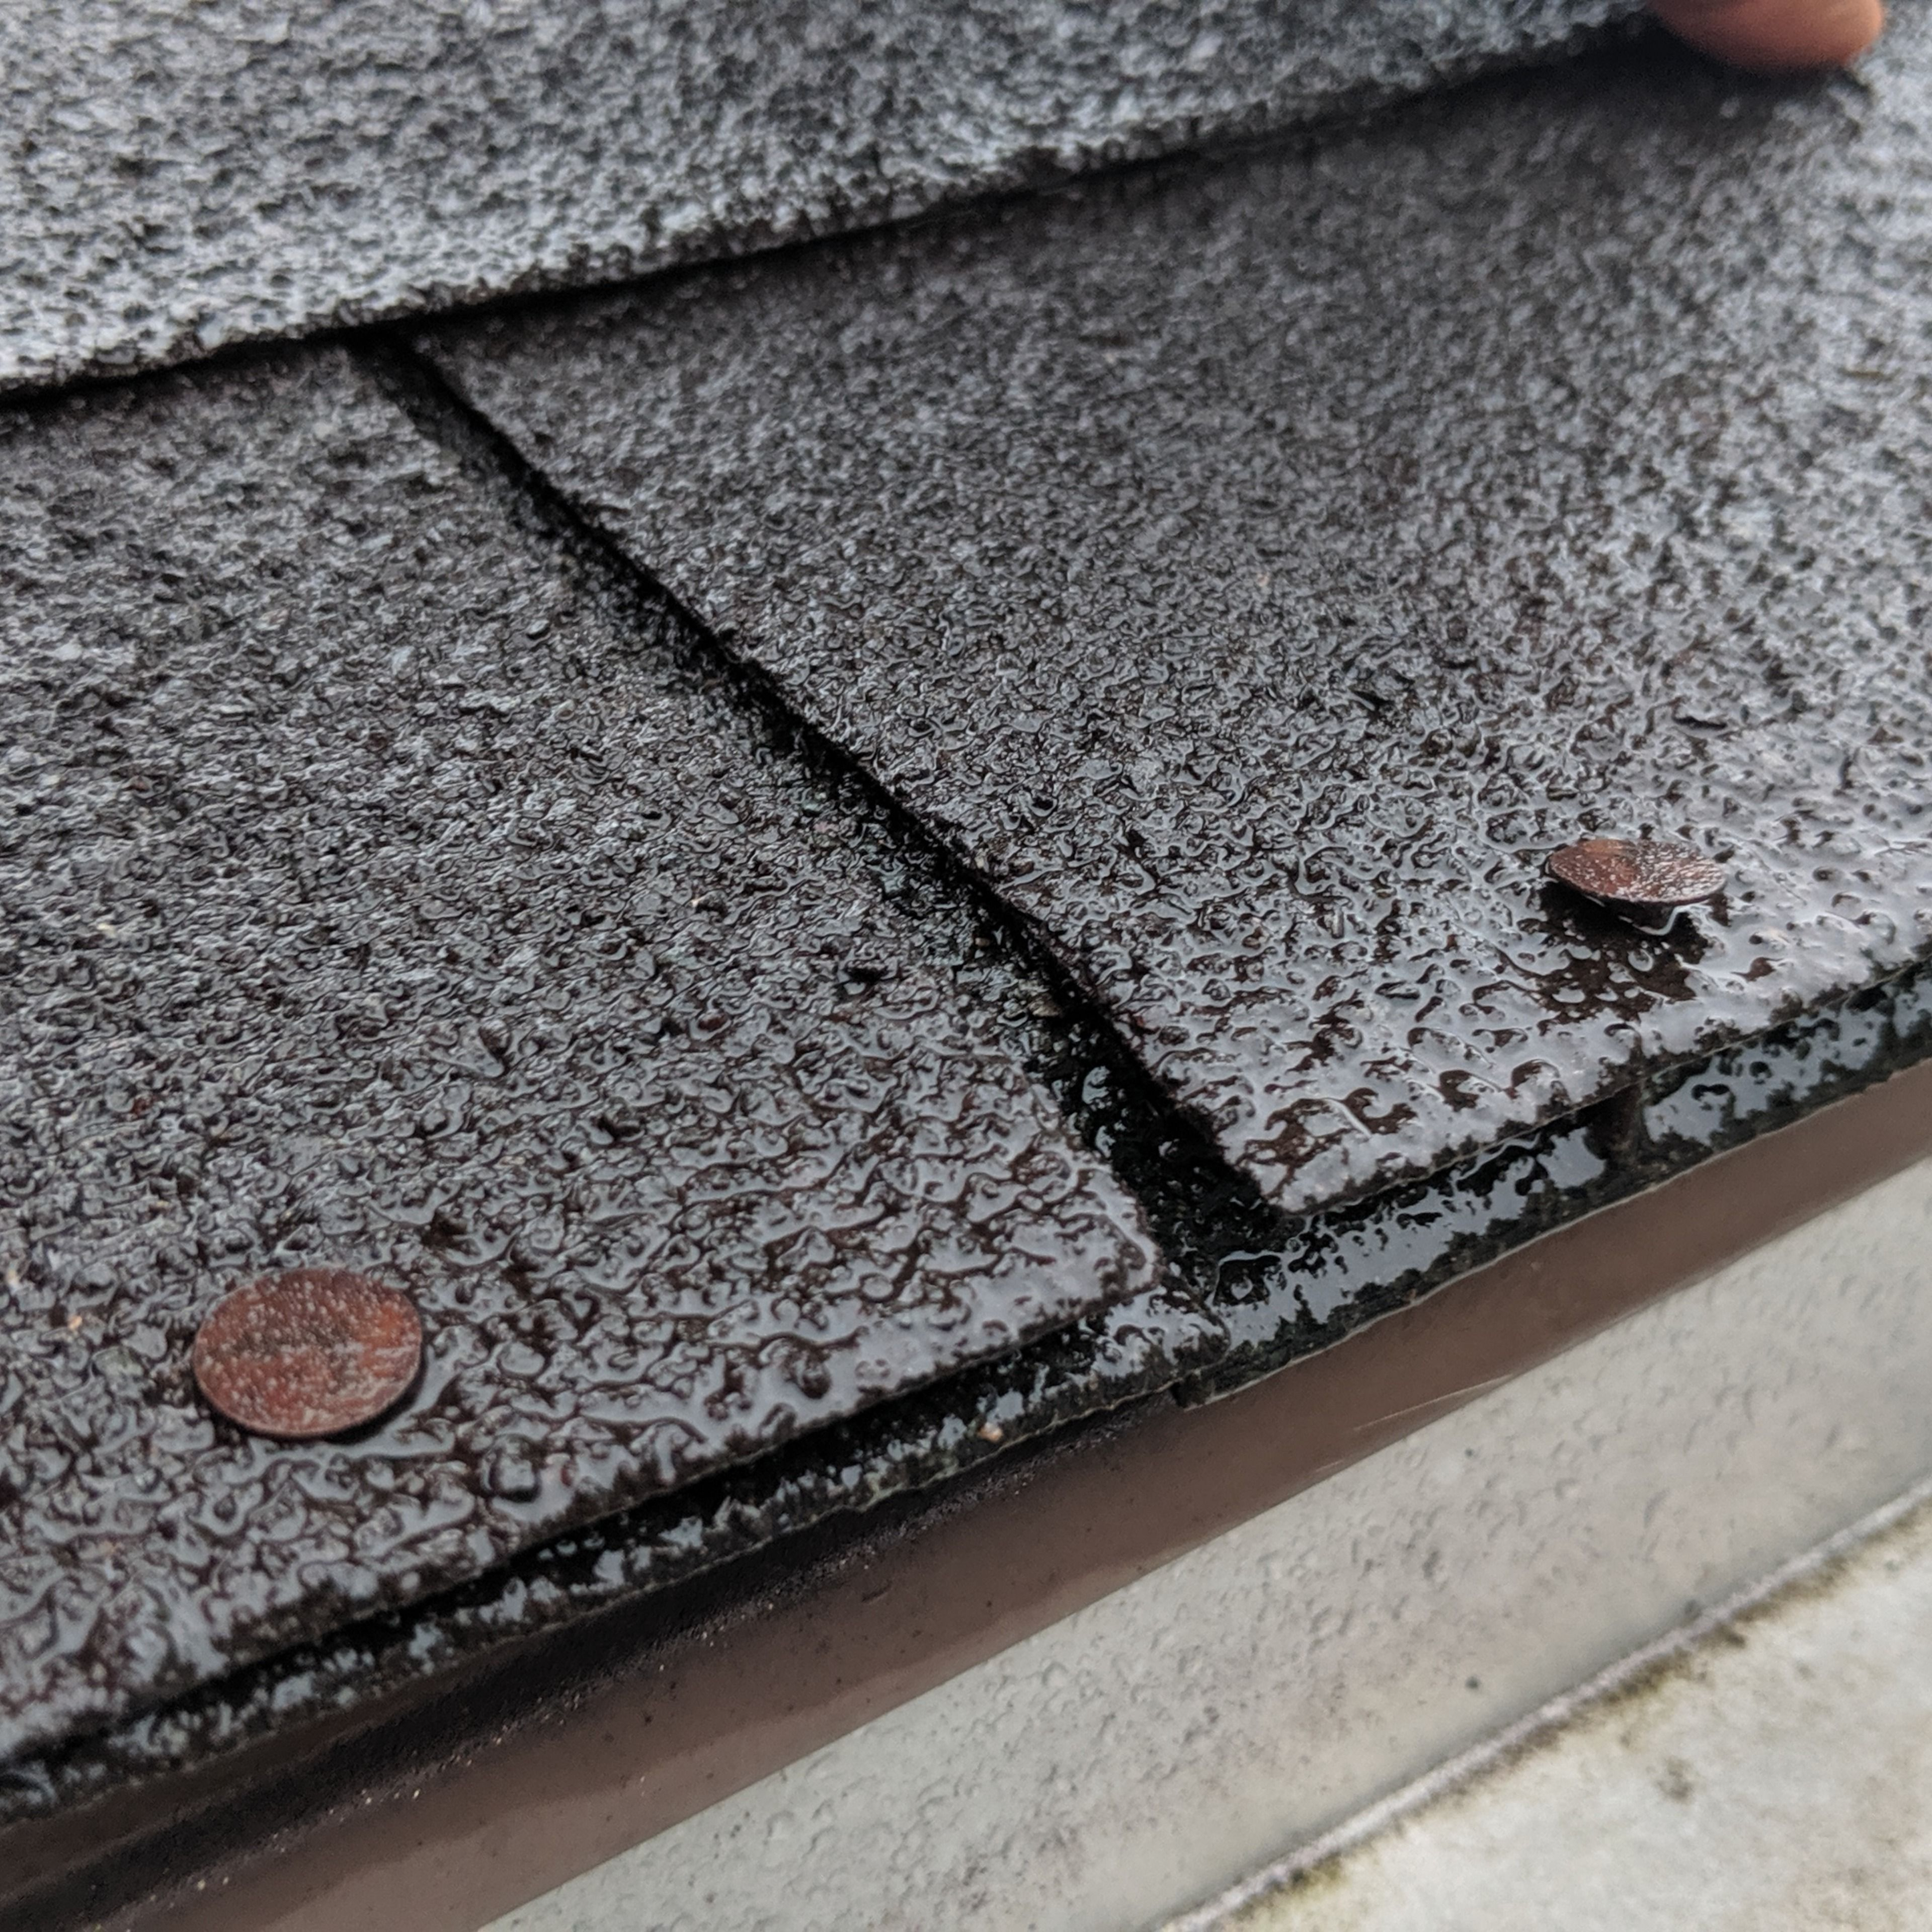 Free Roof Inspection New Brighton Mn Call 651 273 2682 Roof Inspection New Brighton Brighton